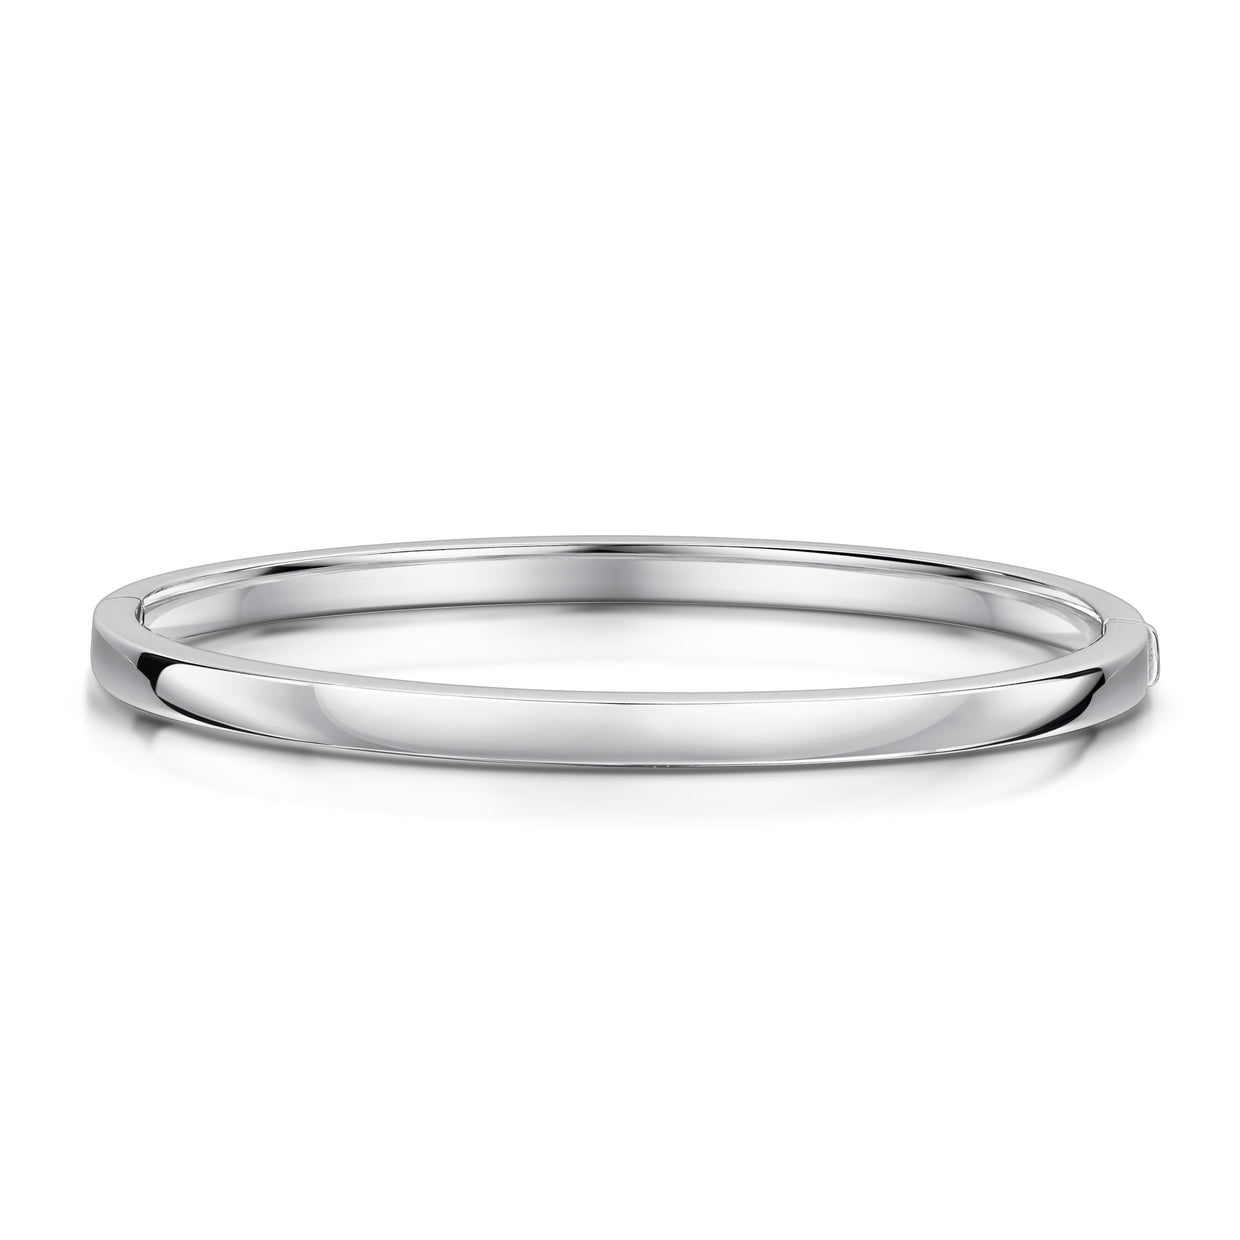 Solid Flat Bangle in 18ct White Gold-Hamilton & Inches